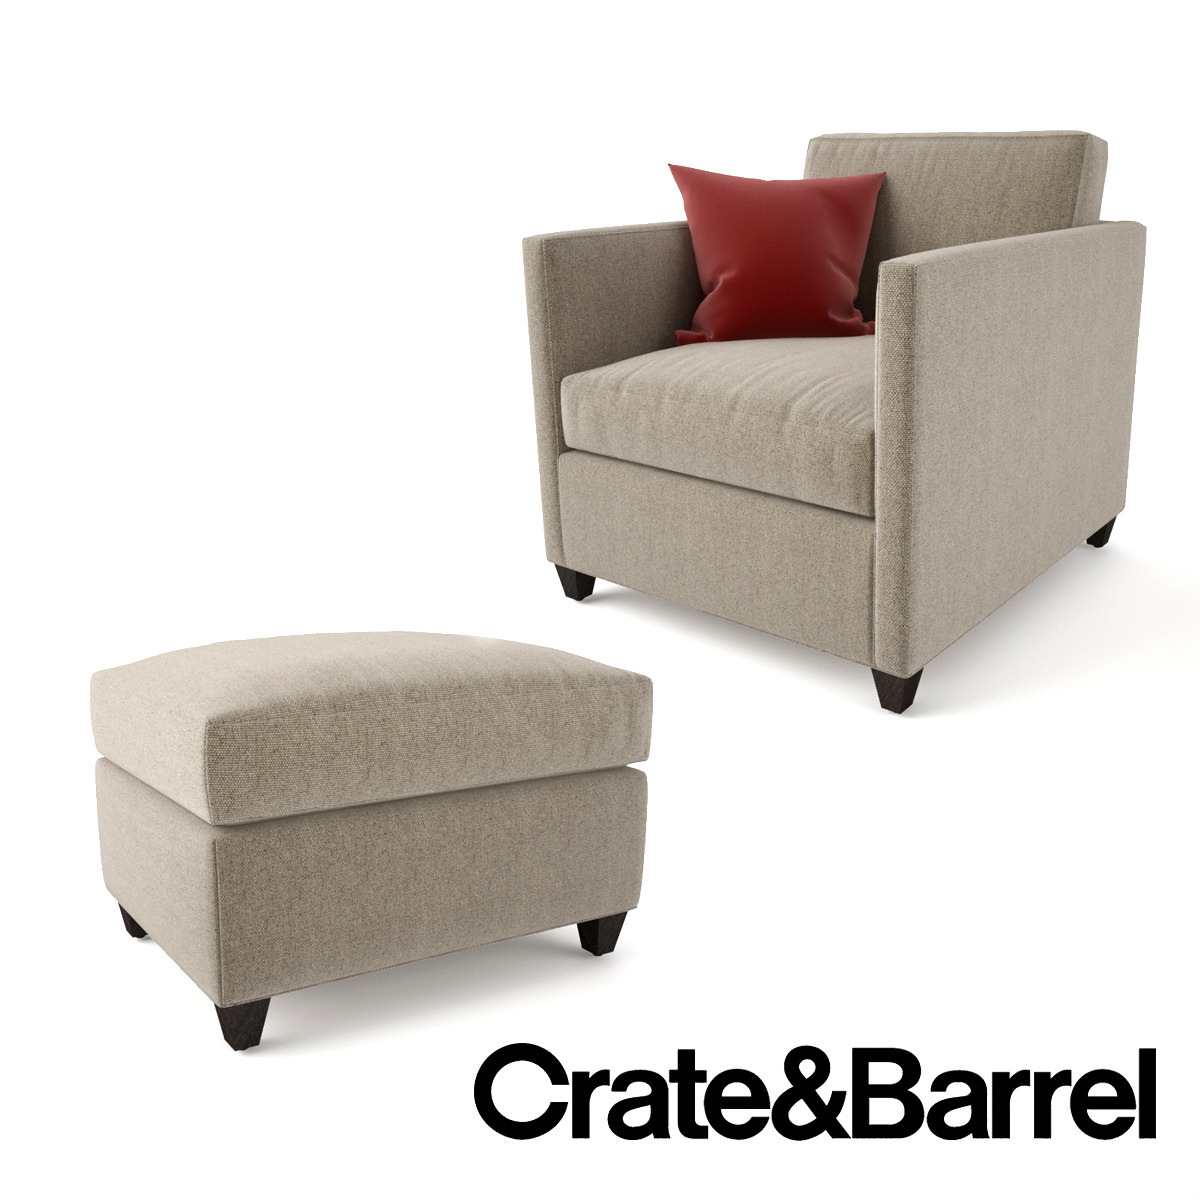 crate and barrel dryden chair and ottoman by emp otu 3docean. Black Bedroom Furniture Sets. Home Design Ideas